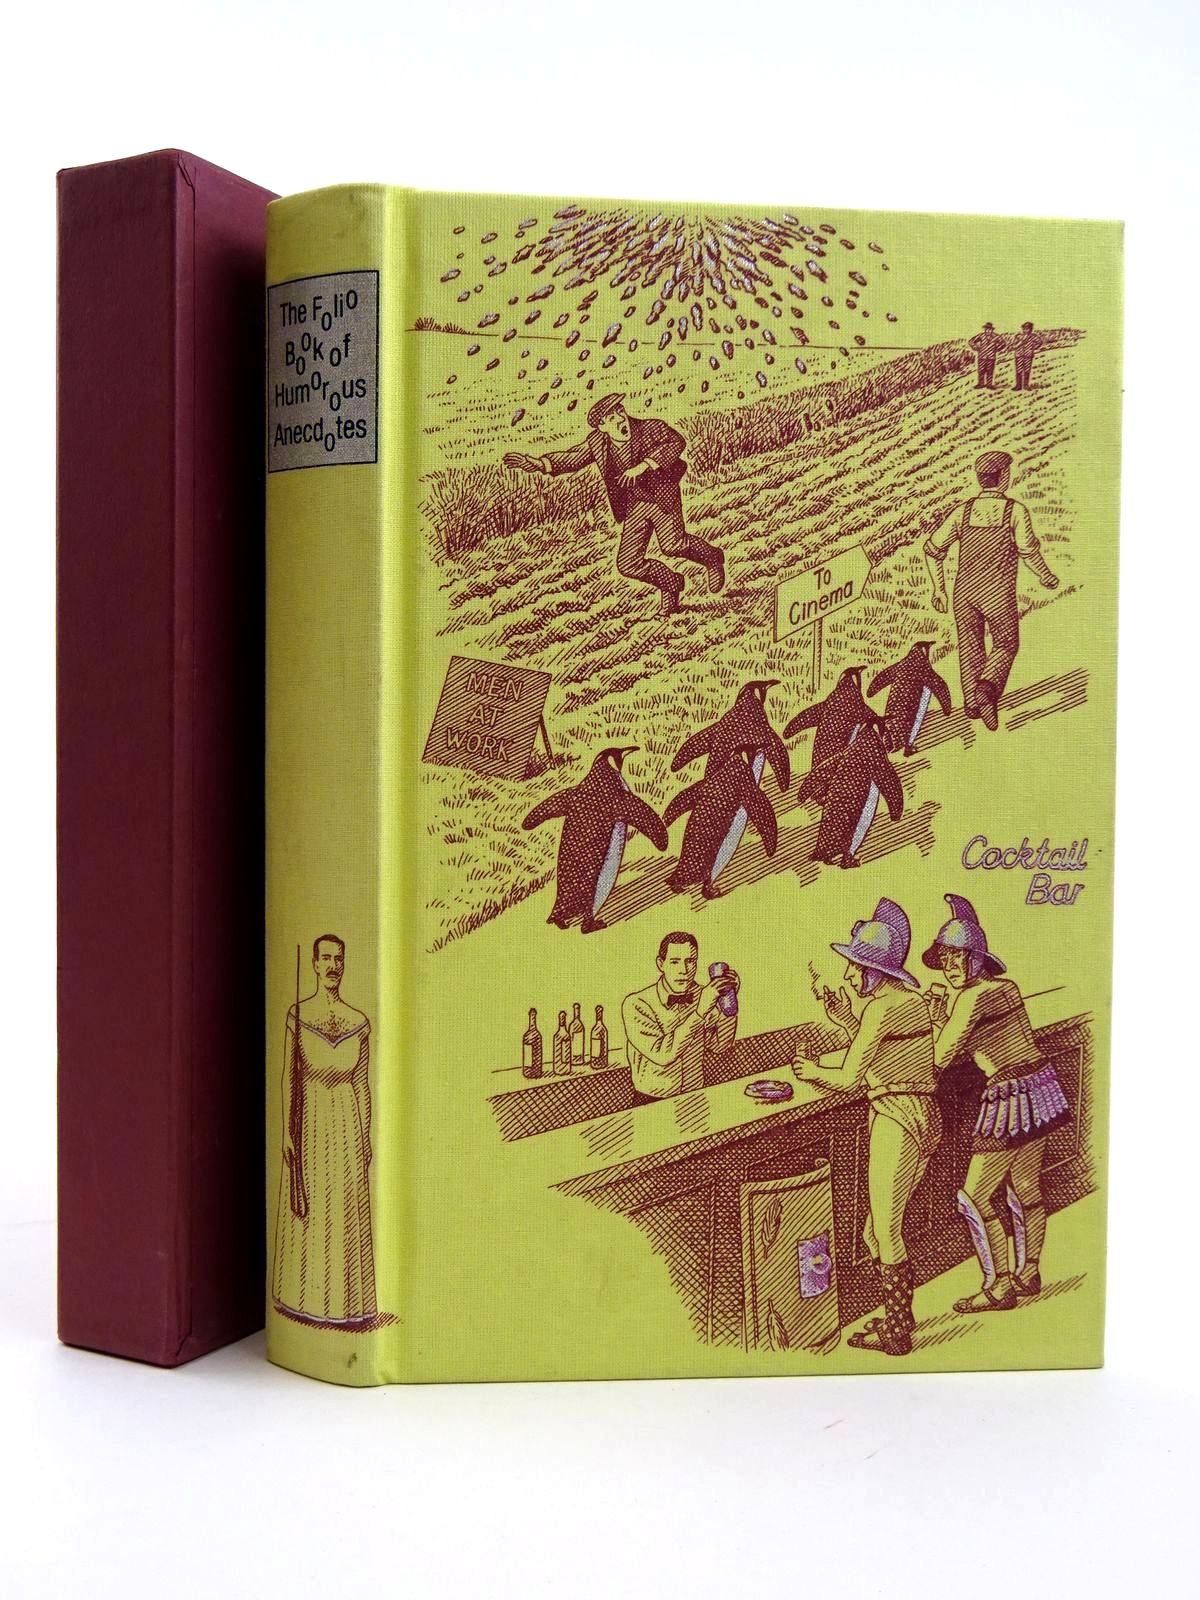 Photo of THE FOLIO BOOK OF HUMOROUS ANECDOTES written by Leeson, Edward illustrated by Hardcastle, Nick published by Folio Society (STOCK CODE: 2131644)  for sale by Stella & Rose's Books